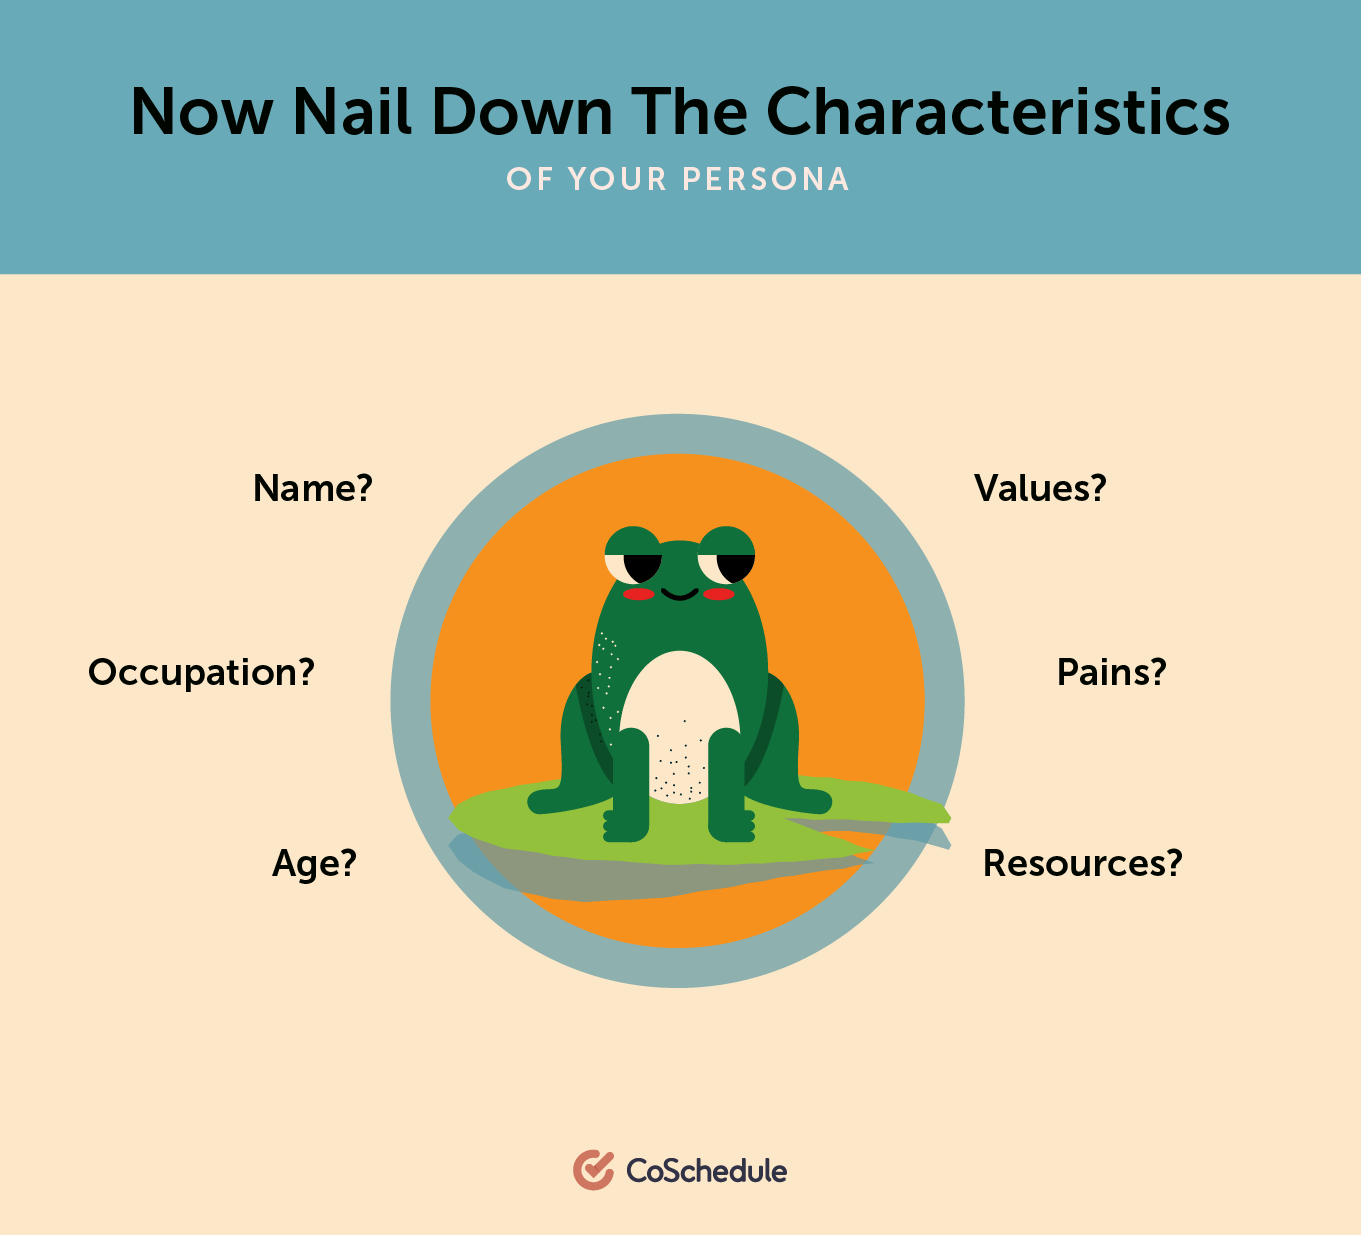 Nail down the characteristics of your persona